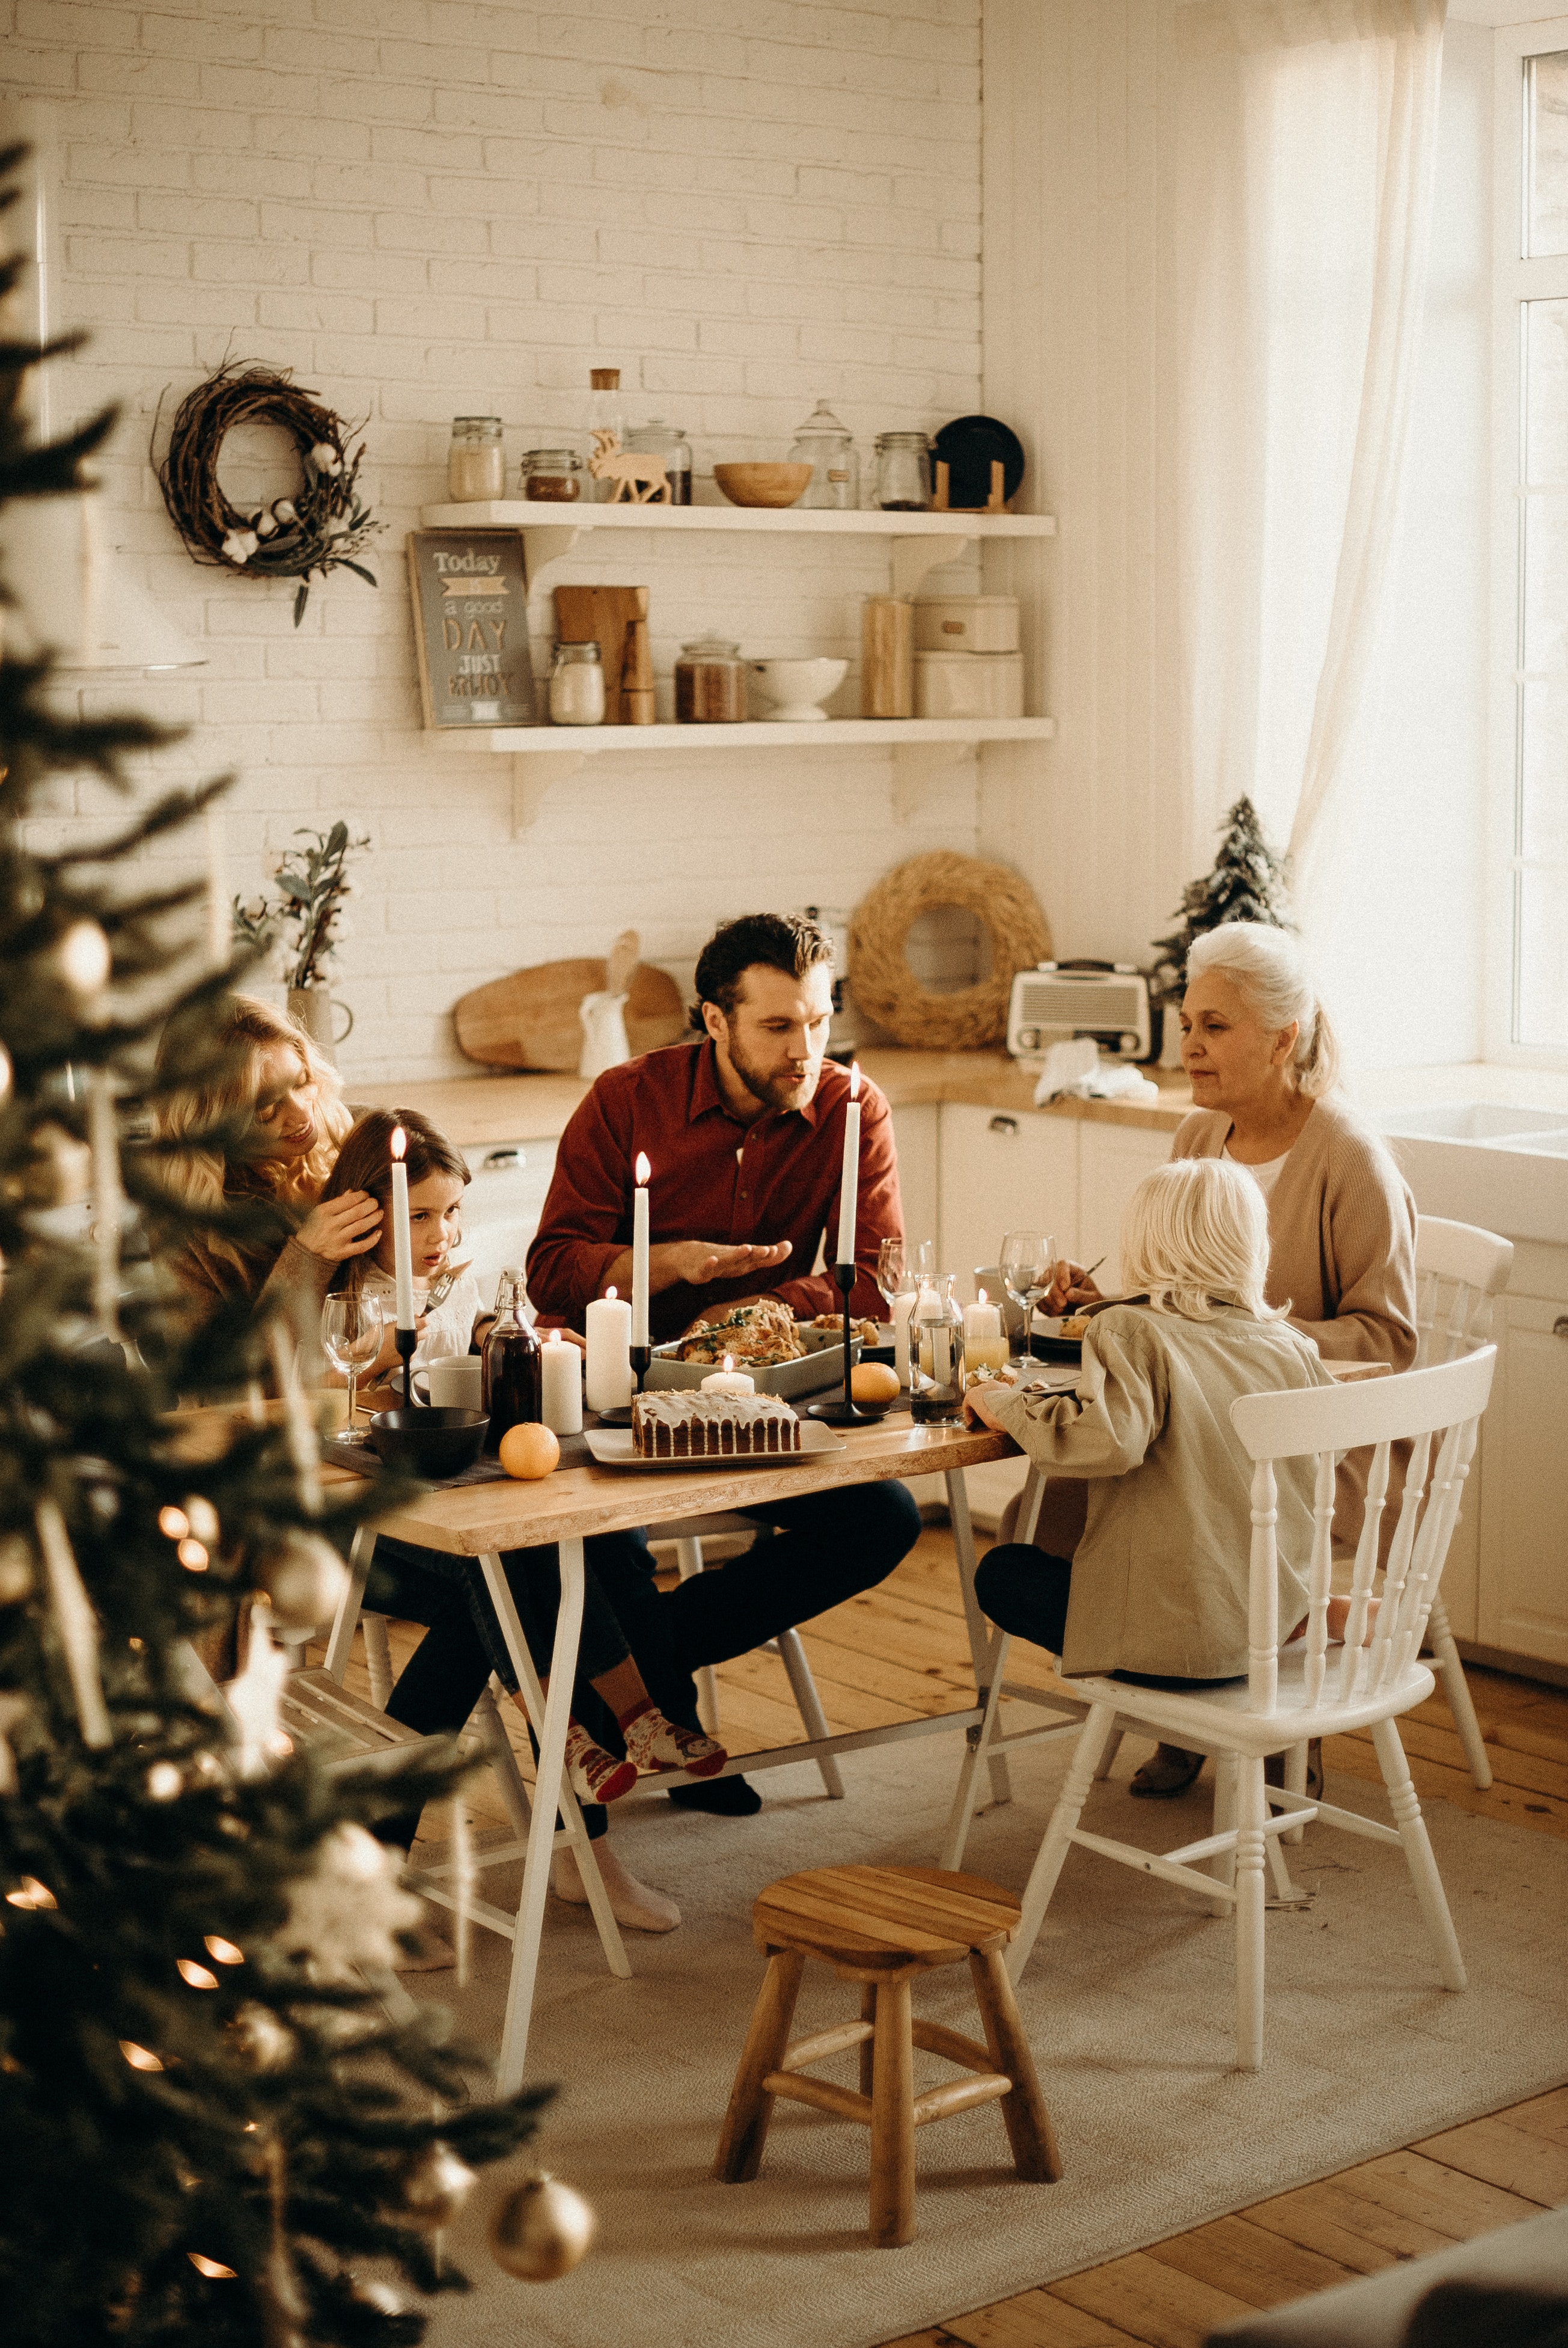 family-sitting-near-dining-table-and-eating-food-3171157_1_1.jpg